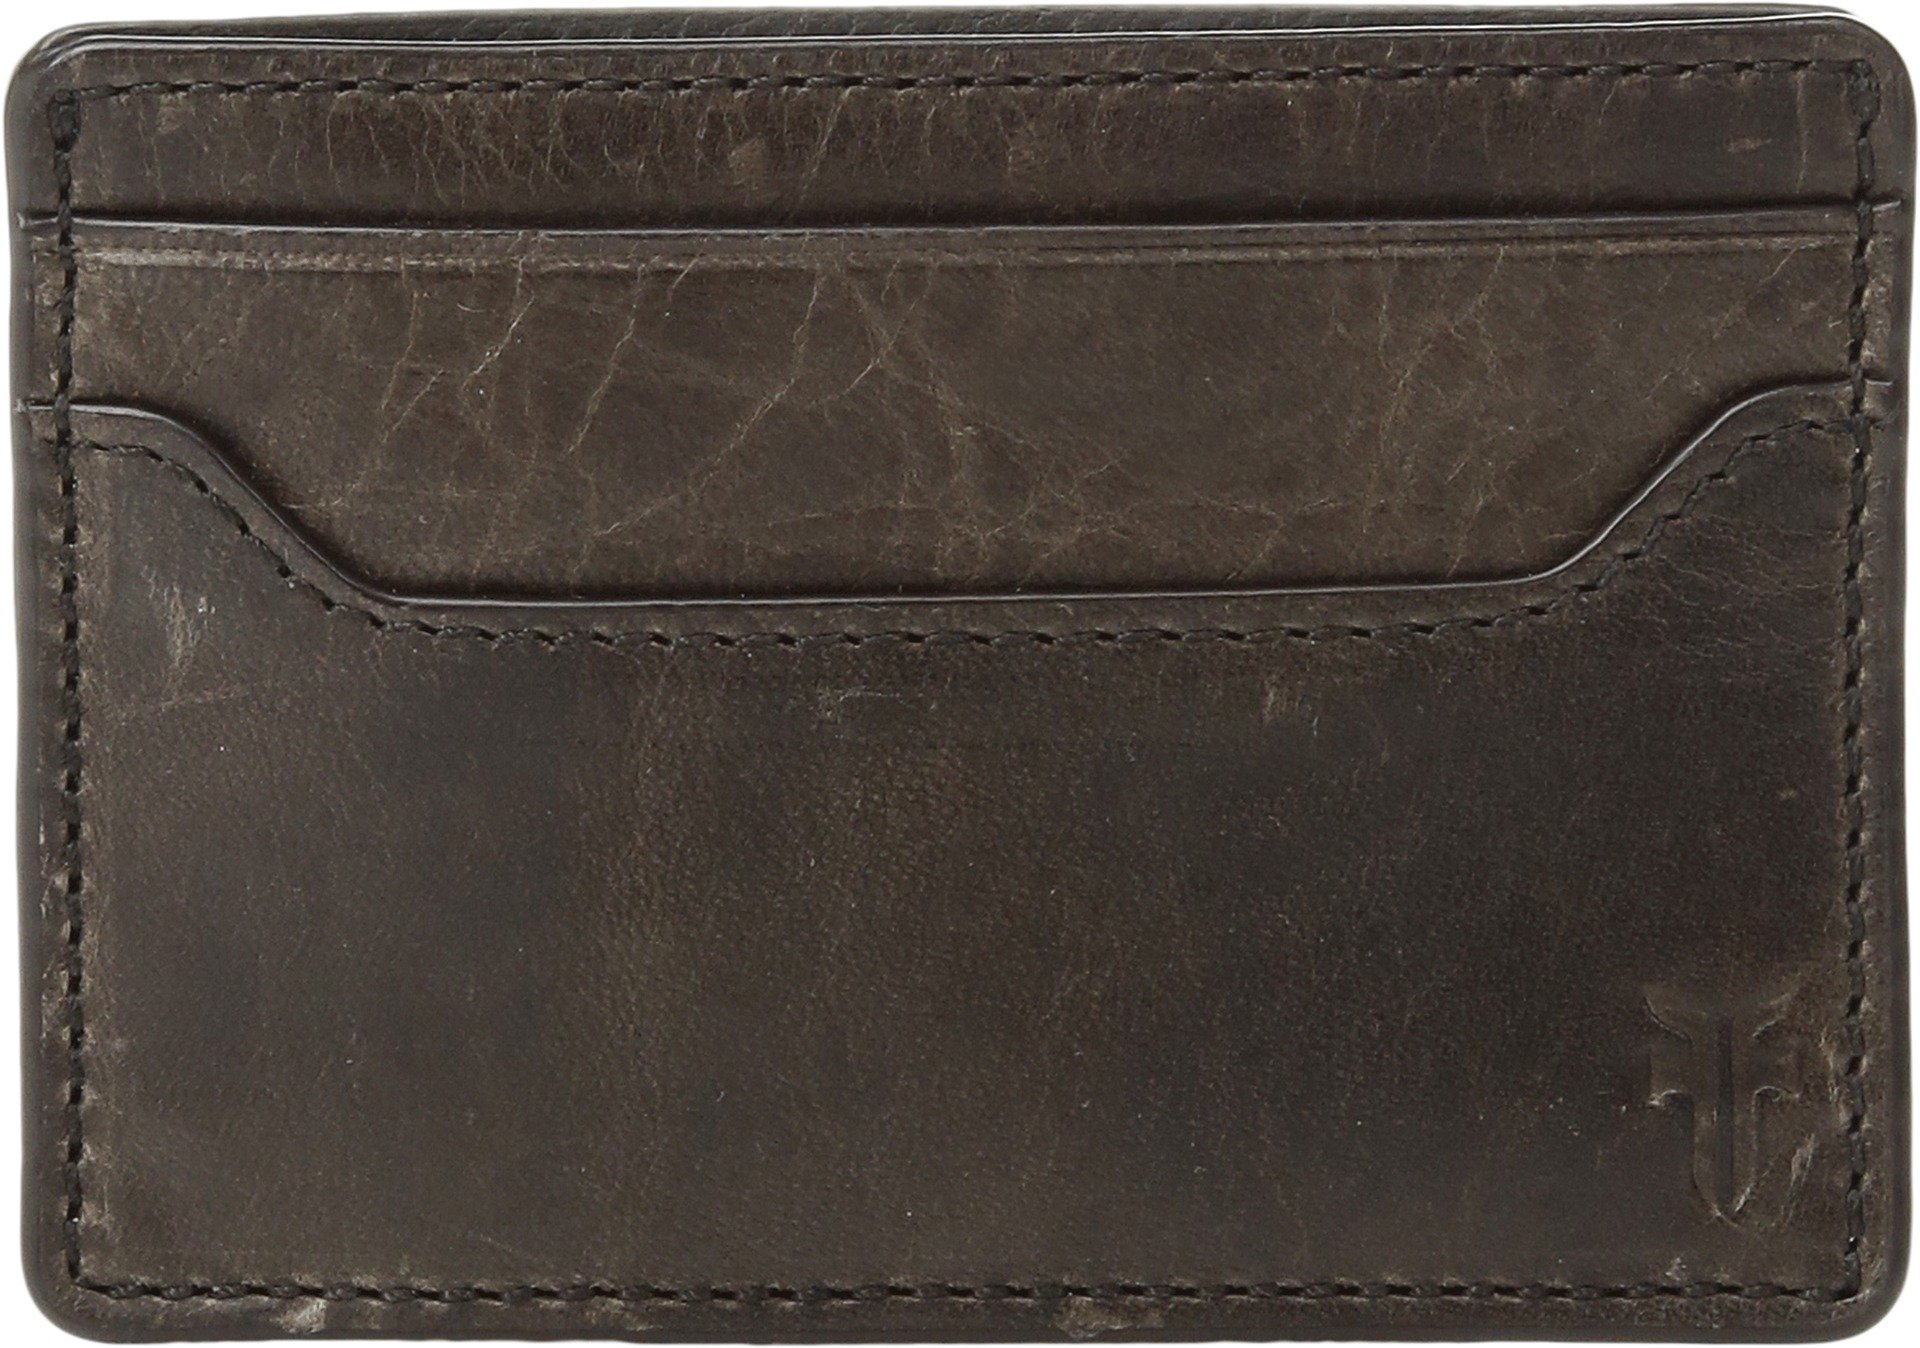 FRYE Men's Logan Money Clip Card Case, Slate, One Size